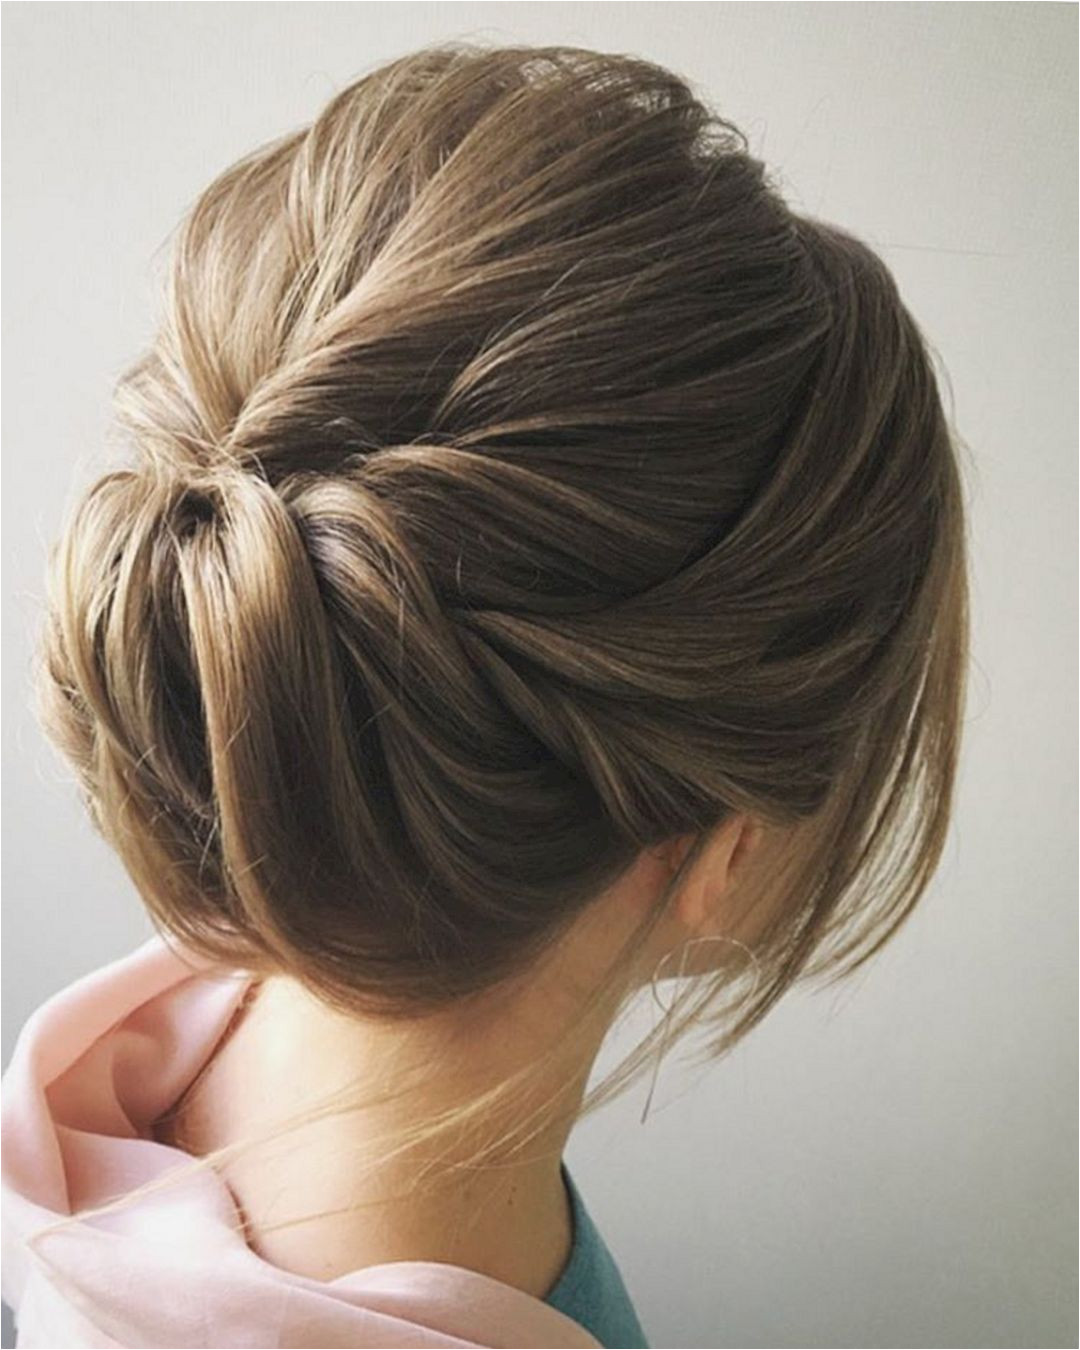 Lovely 25 Beautiful Simple bun Hairstyles Ideas For Women Looks More Pretty s